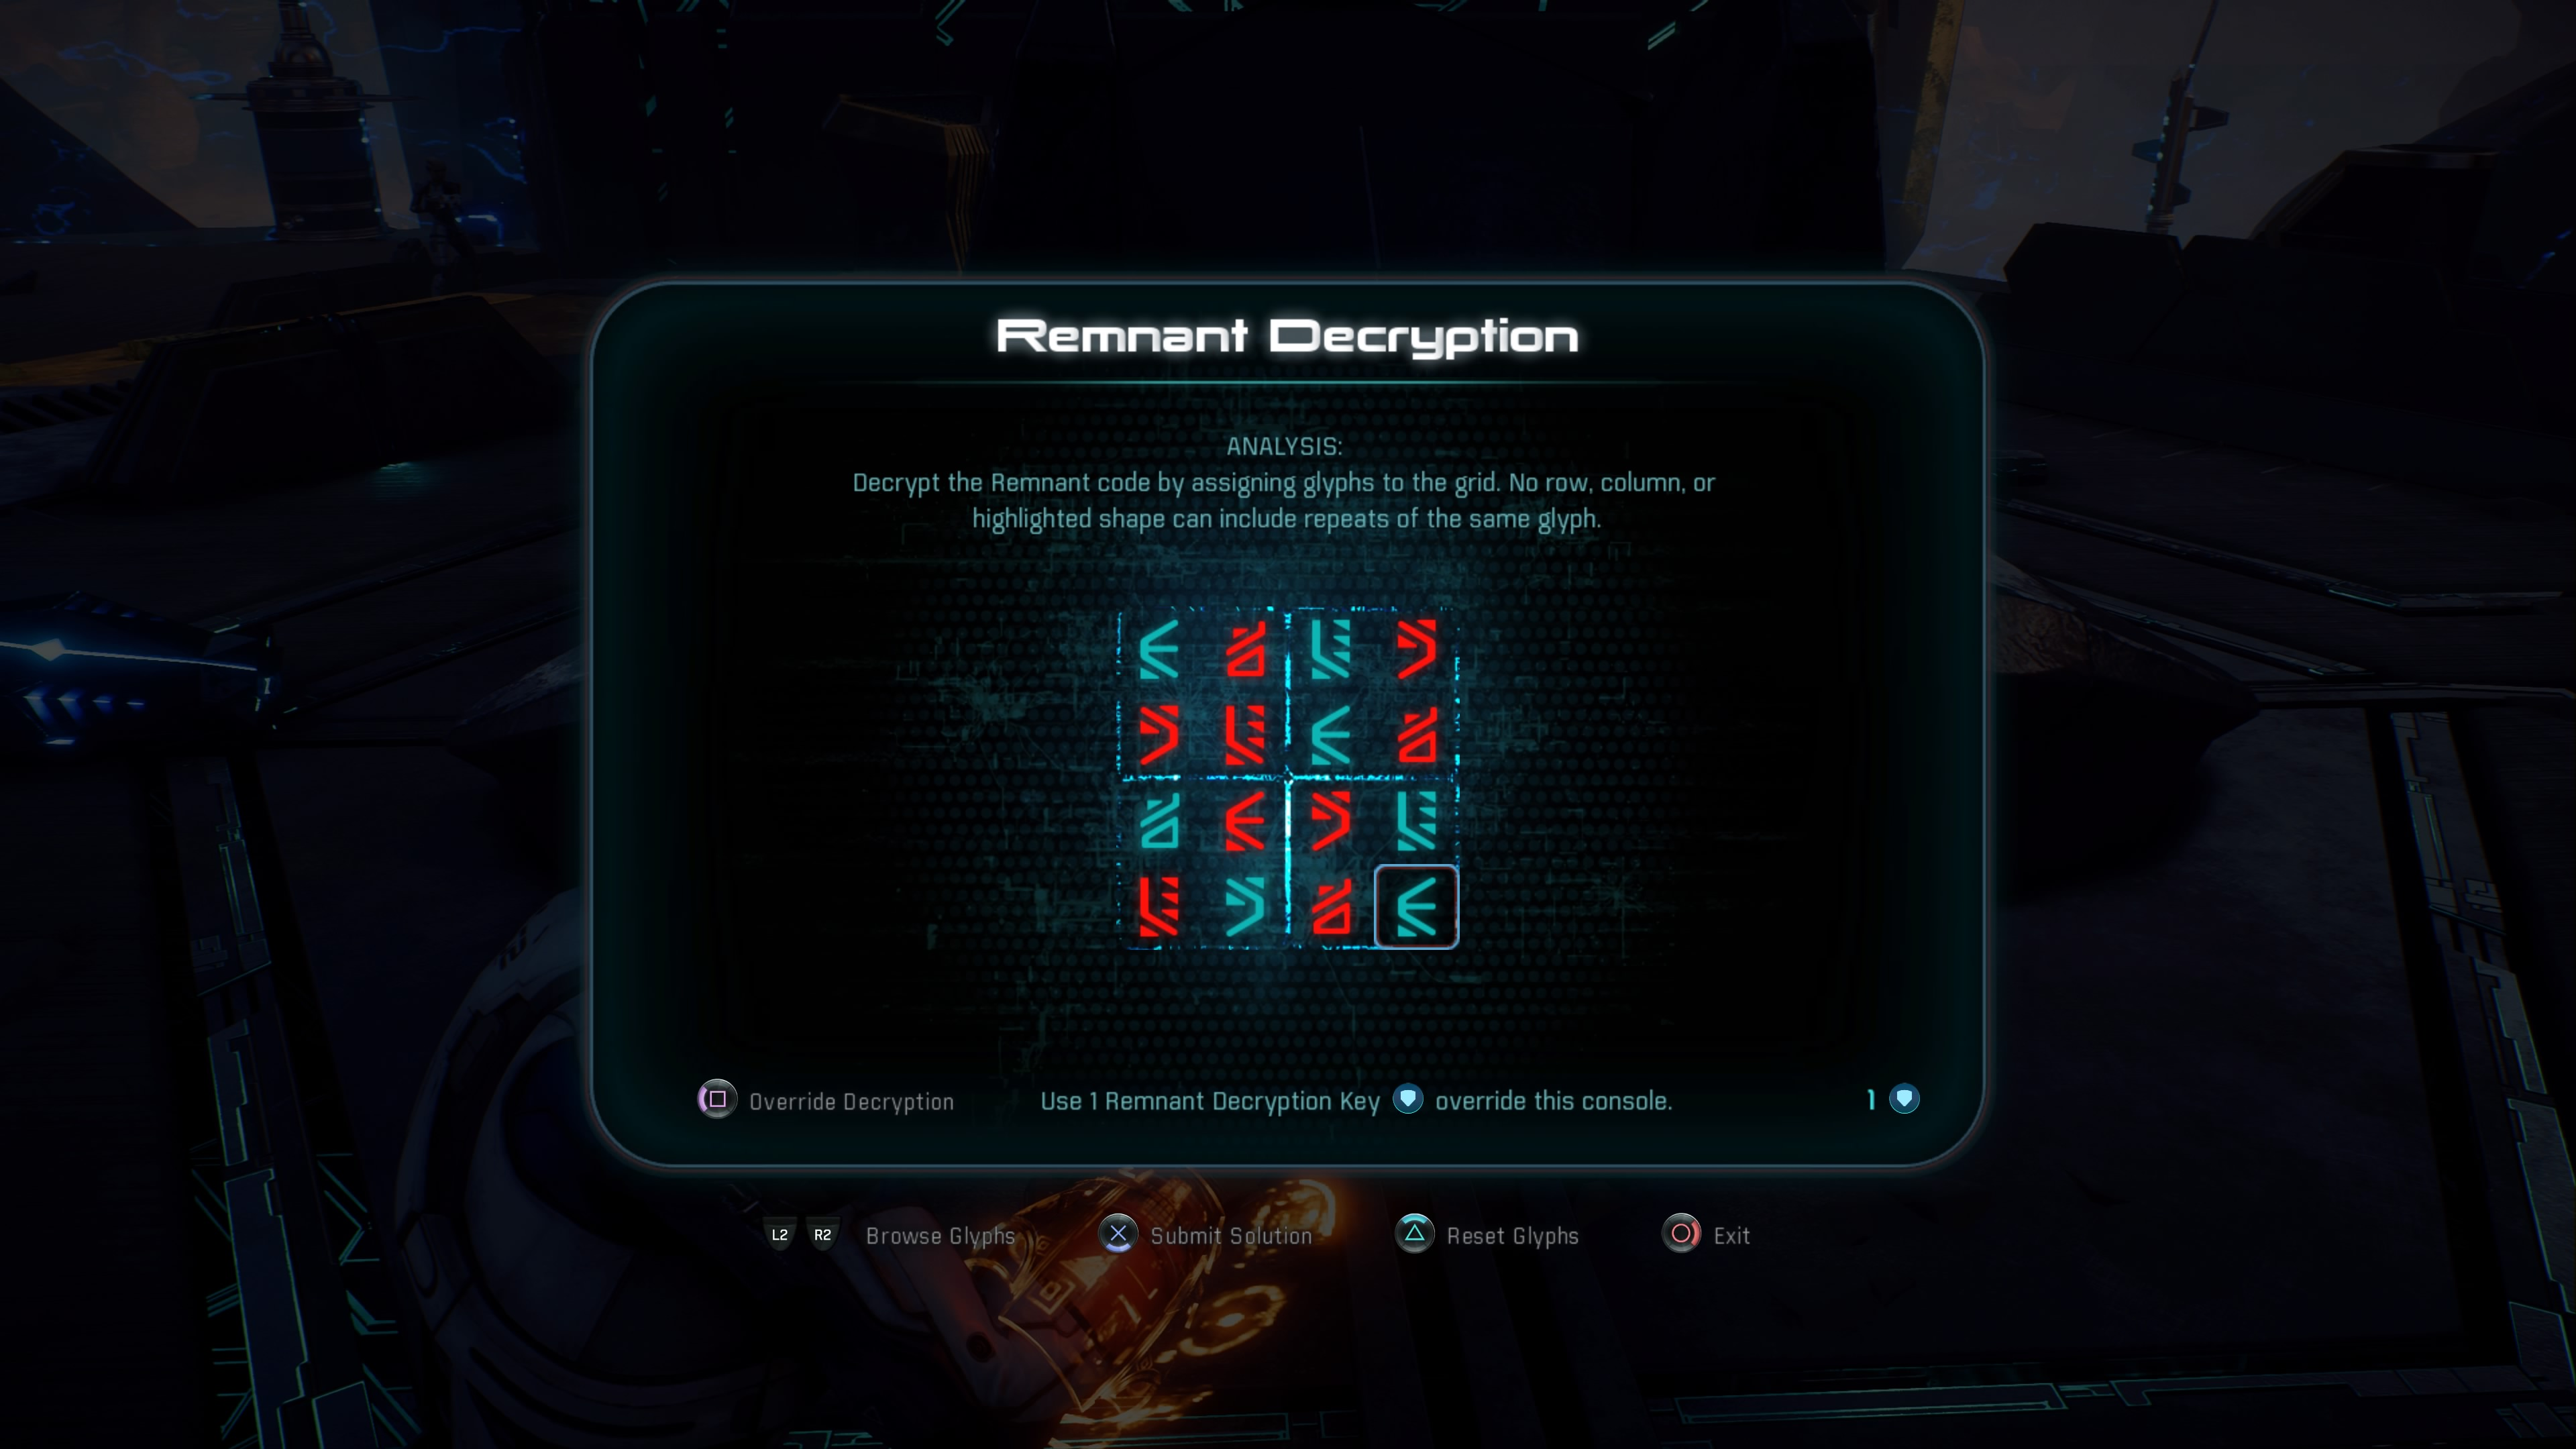 Mass Effect Andromeda Remnant Decryption Solutions Glyphs Eos